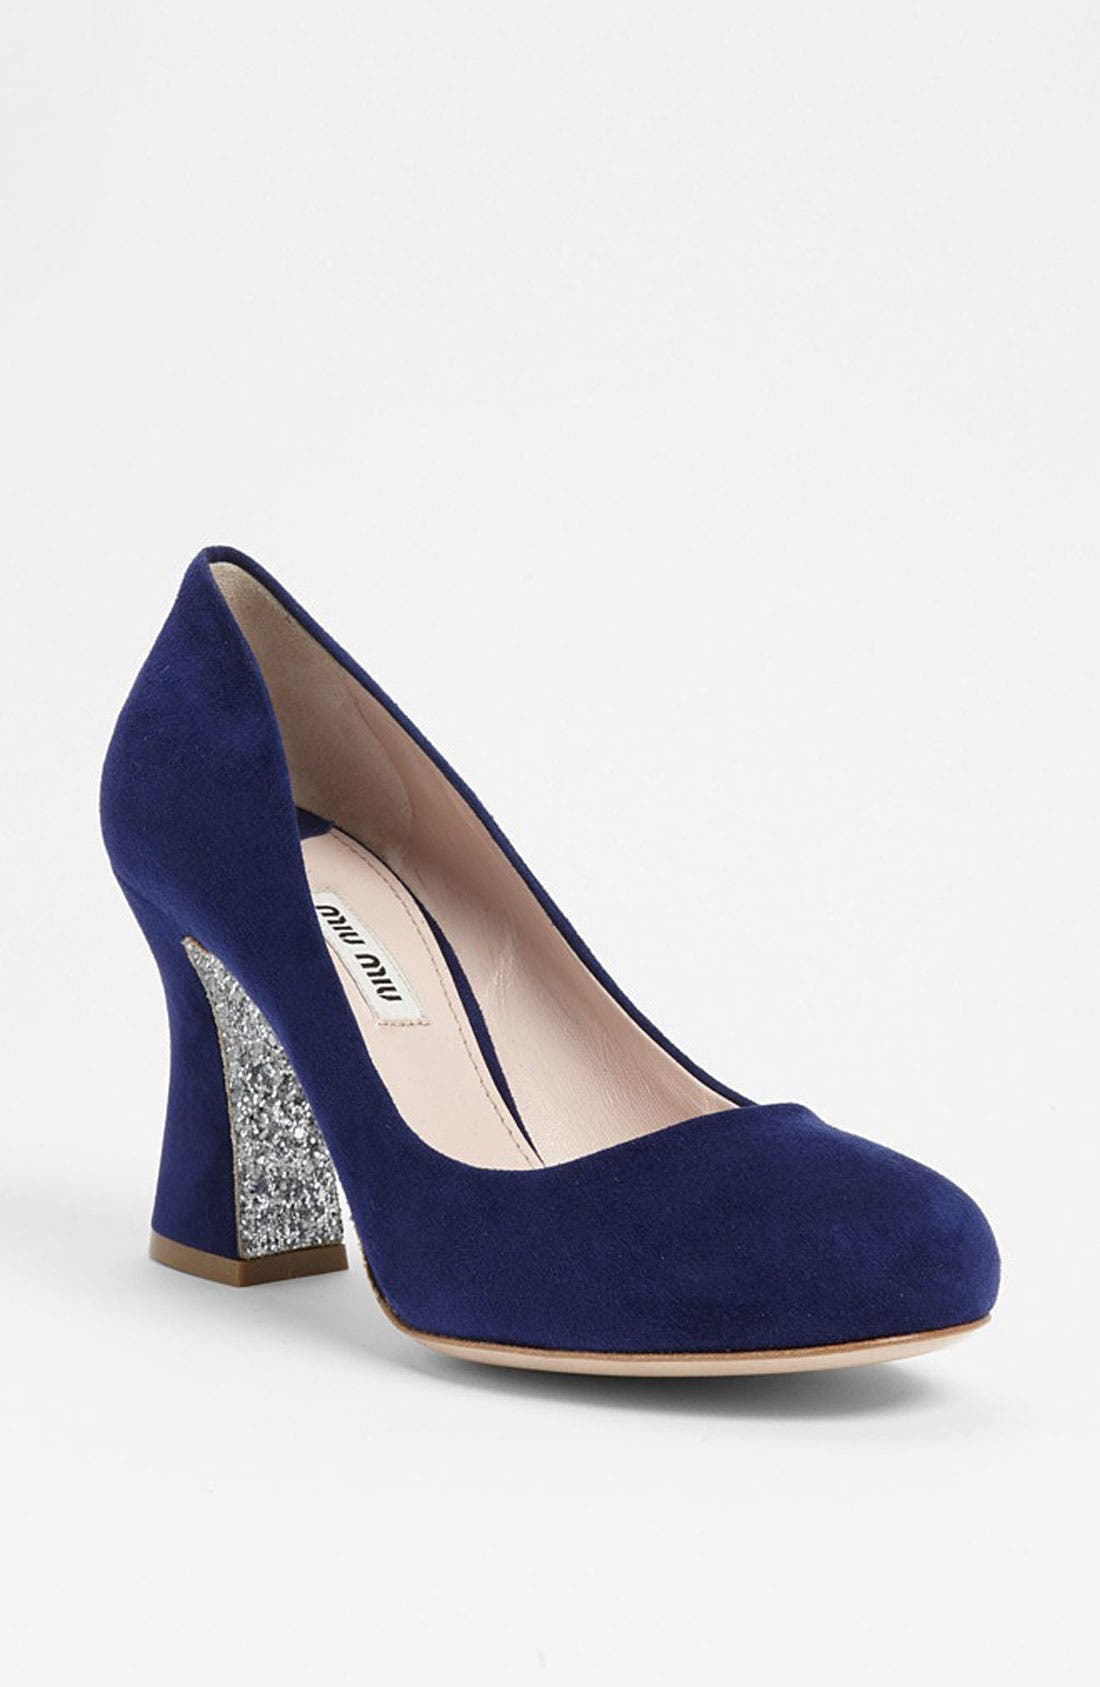 Alternate Image 1 Selected - Miu Miu Glitter Sole Block Heel Pump